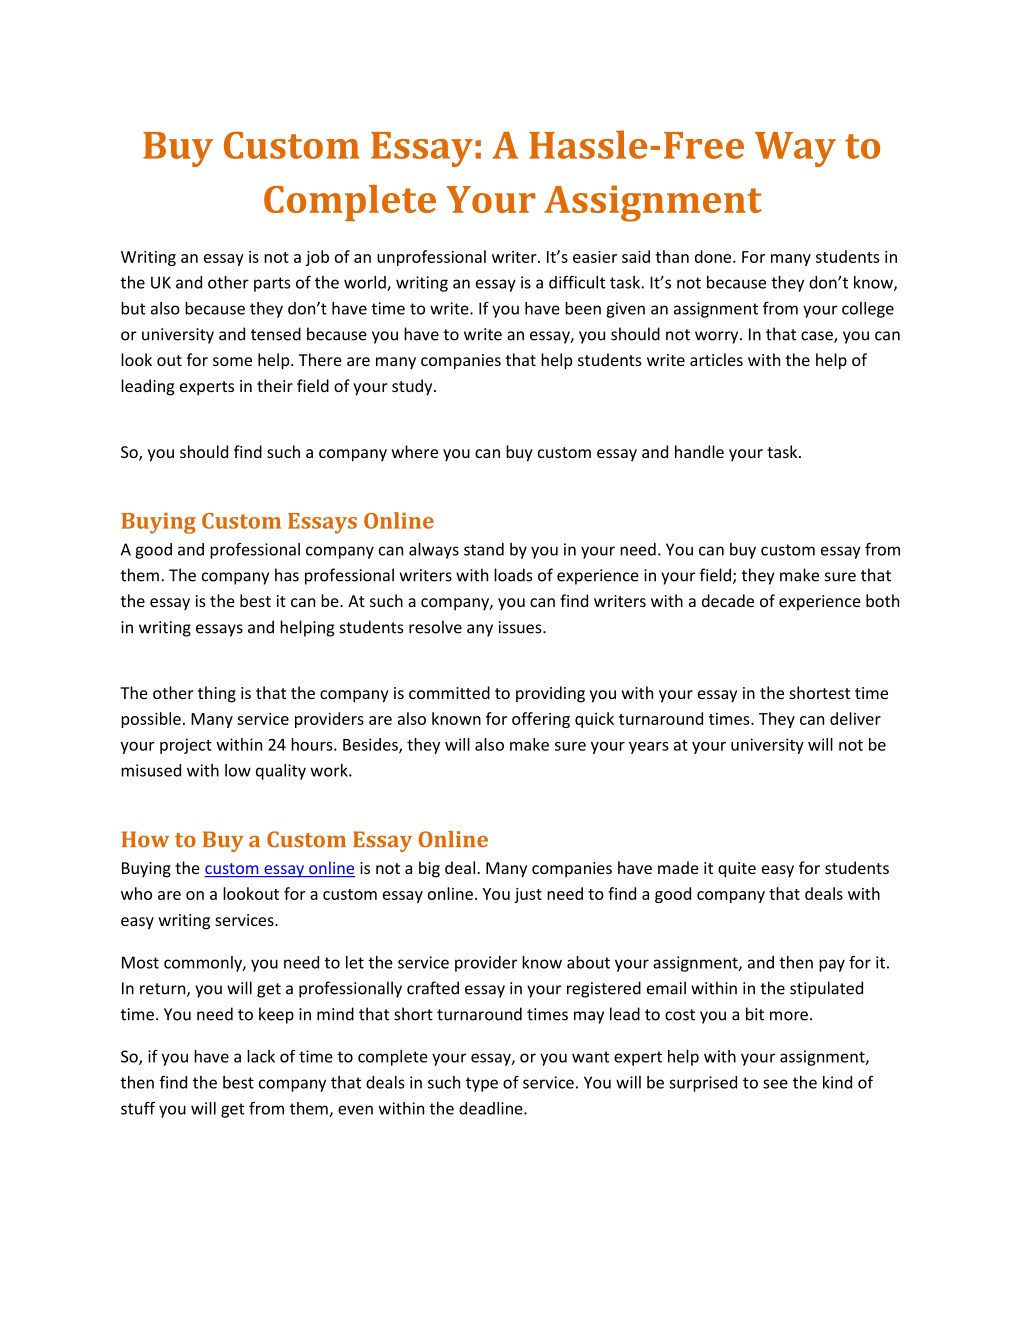 Example Of A Proposal Essay Buy A Custom Essay Buy A Custom Essay  Writing High School Essays also English Language Essay Topics Buy A Custom Essay  Buy Custom Essays Online High School Narrative Essay